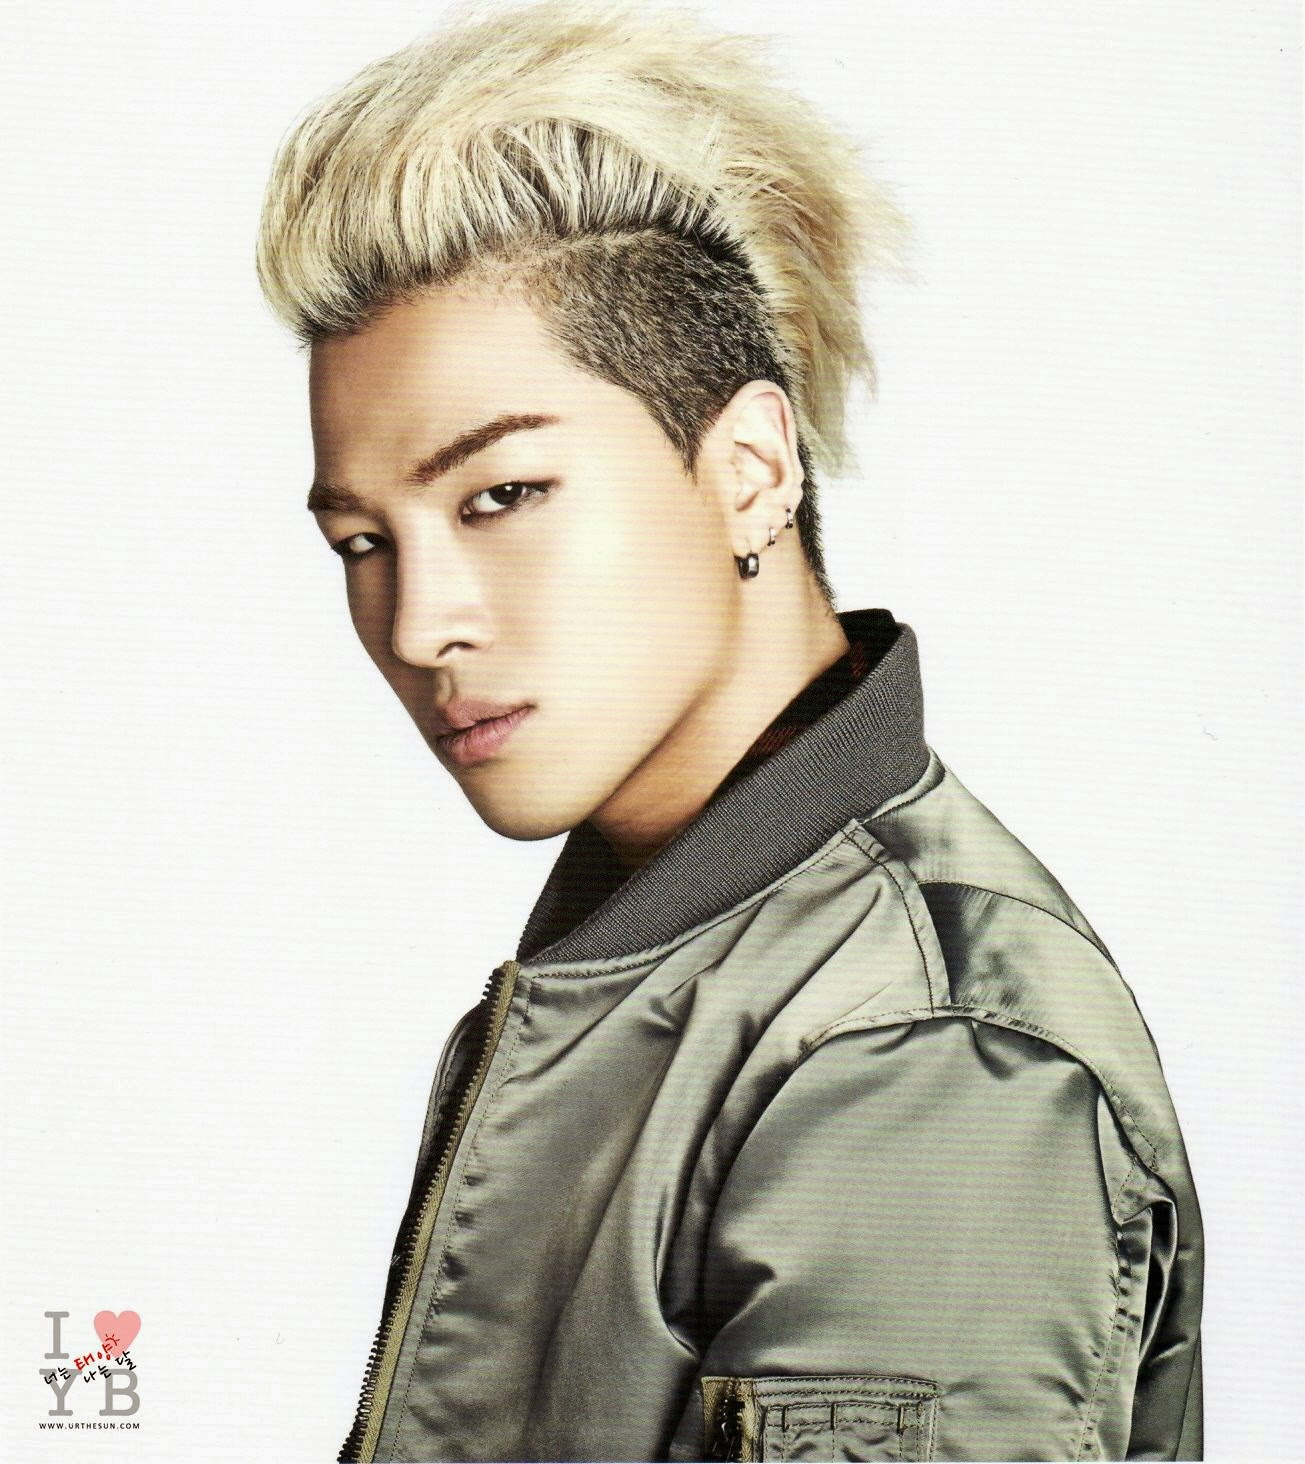 Taeyangkoreandream Big Bang S Seasons Greetings Taeyang